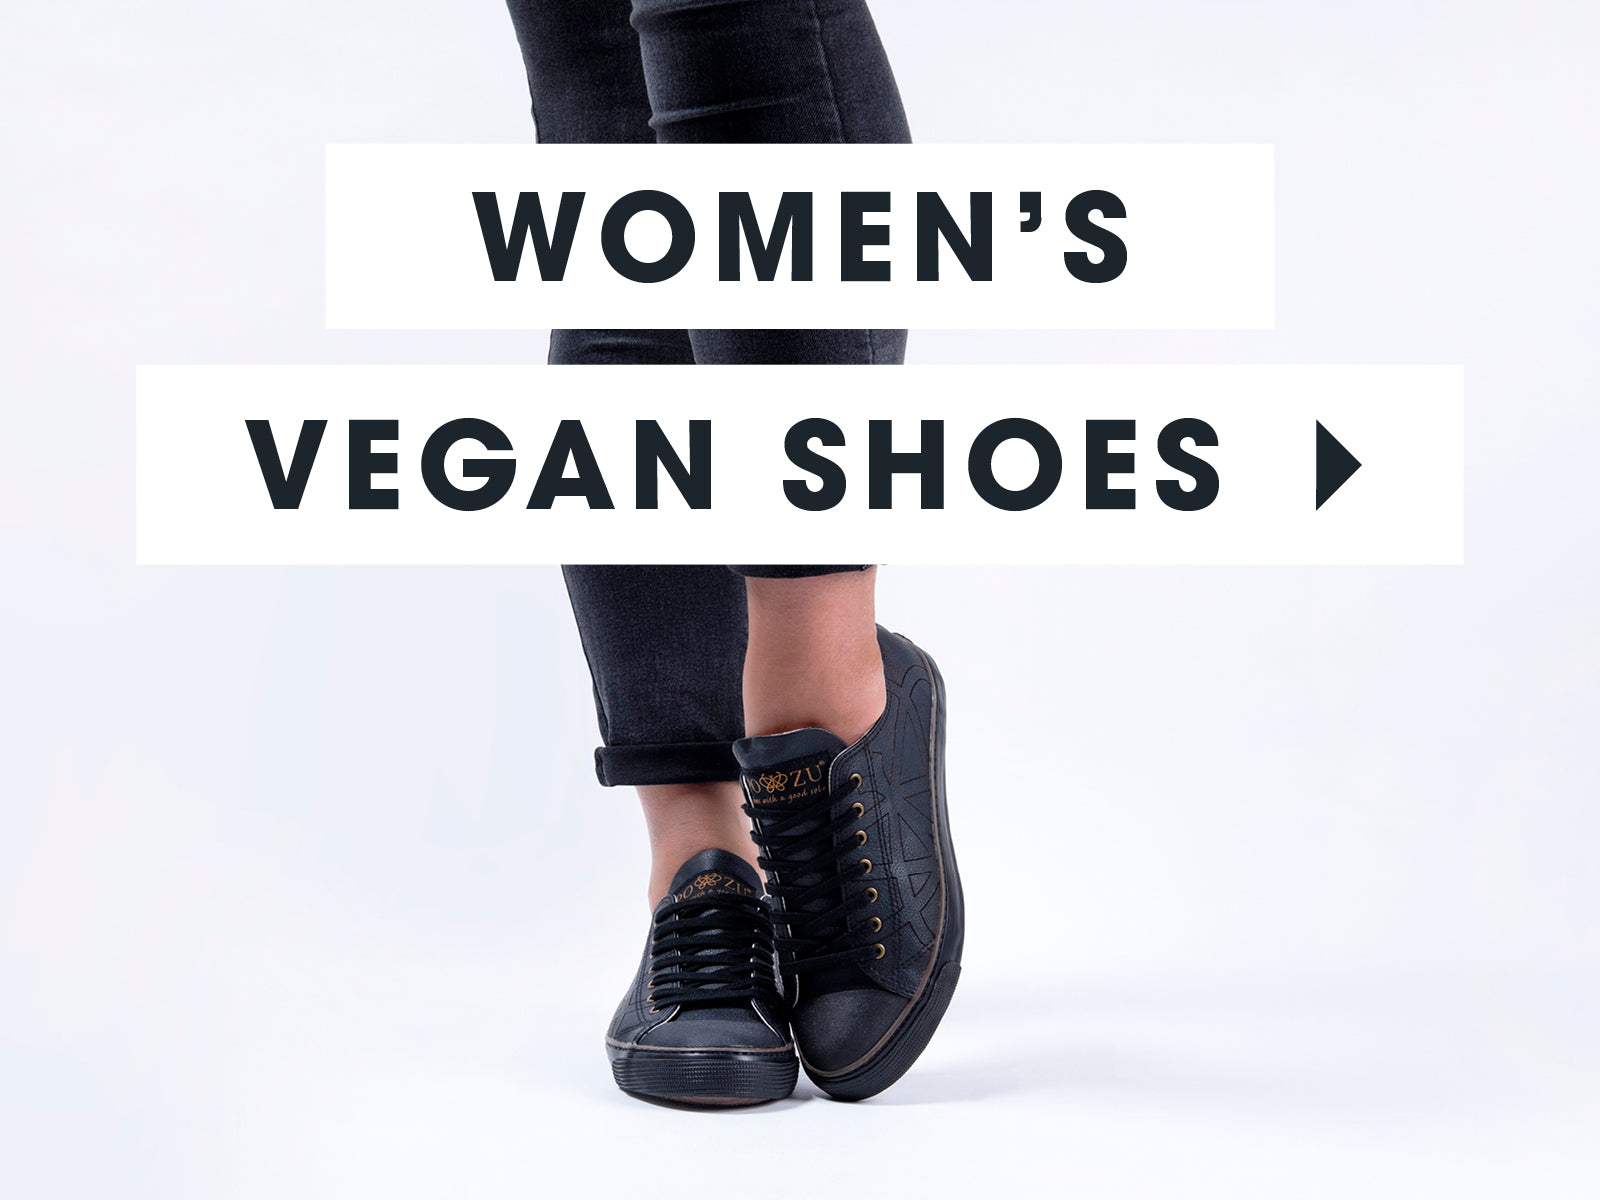 women's vegan shoes po-zu